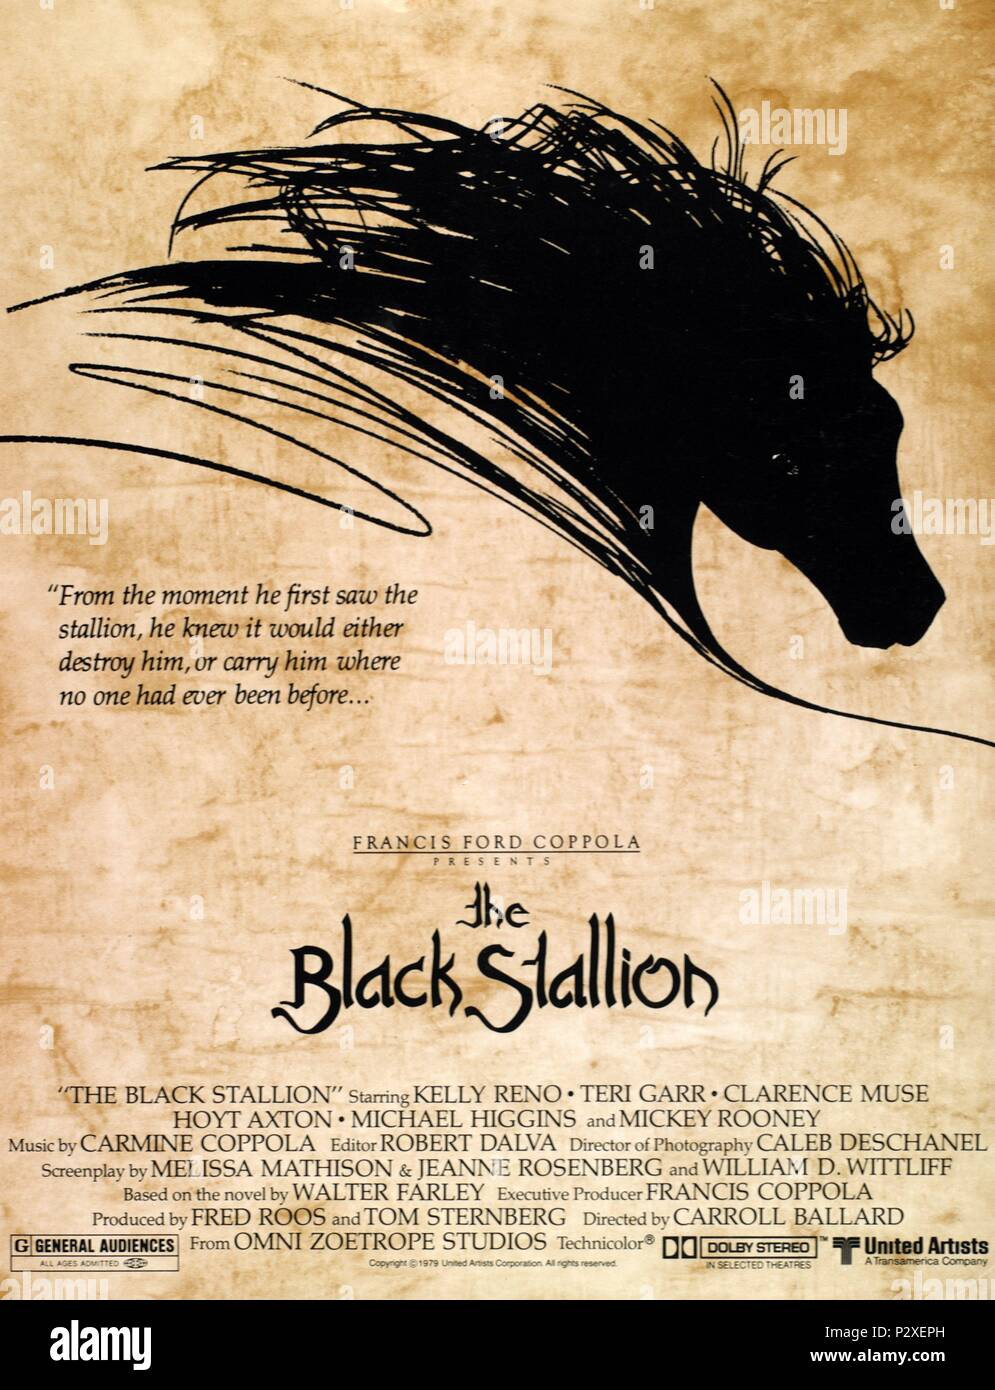 Original Film Title: THE BLACK STALLION.  English Title: THE BLACK STALLION.  Film Director: CARROLL BALLARD.  Year: 1979. Credit: UNITED ARTISTS / Album Stock Photo